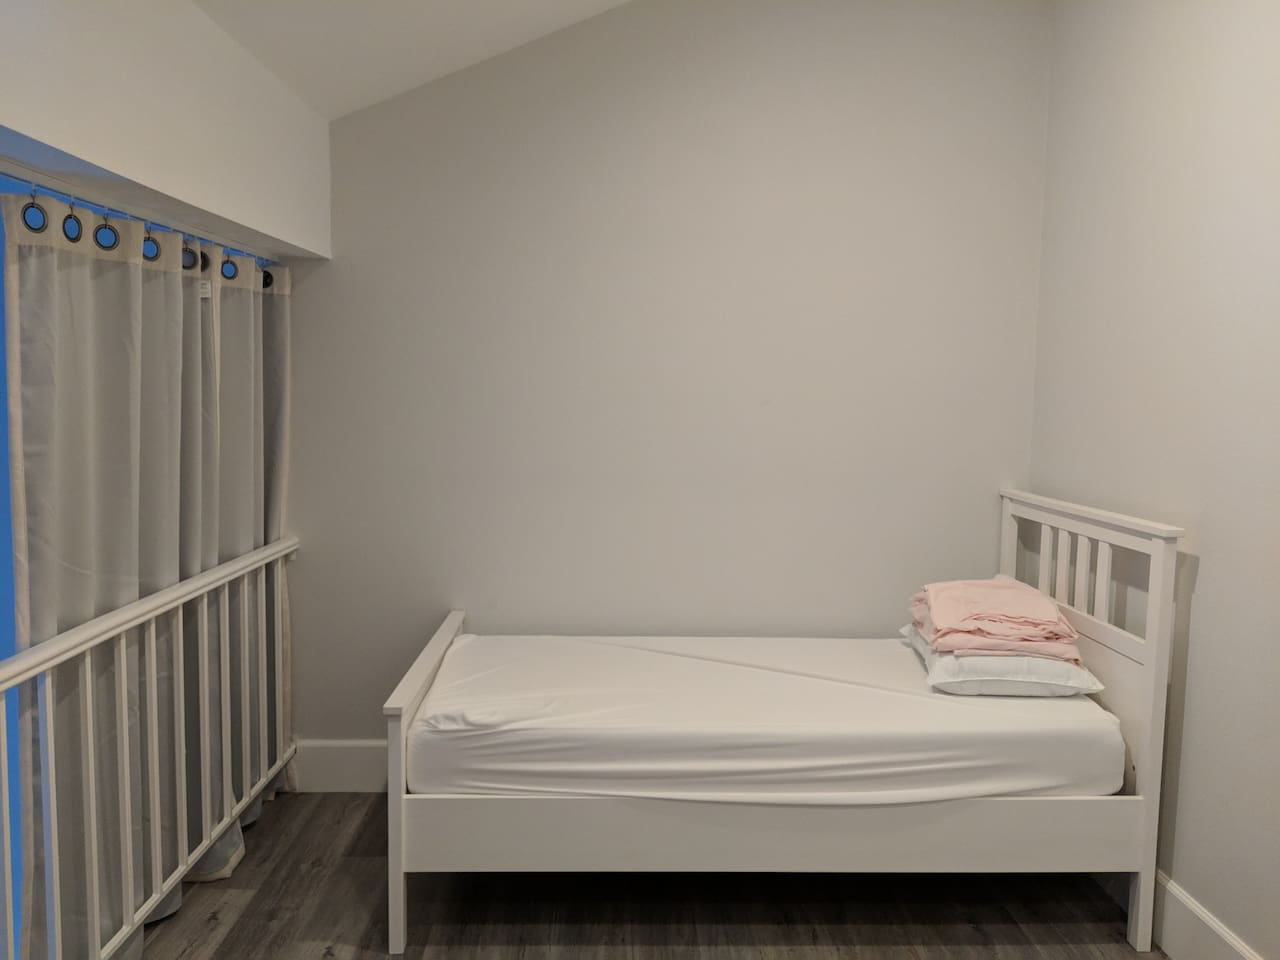 Loft with twin bed and privacy curtains that go across